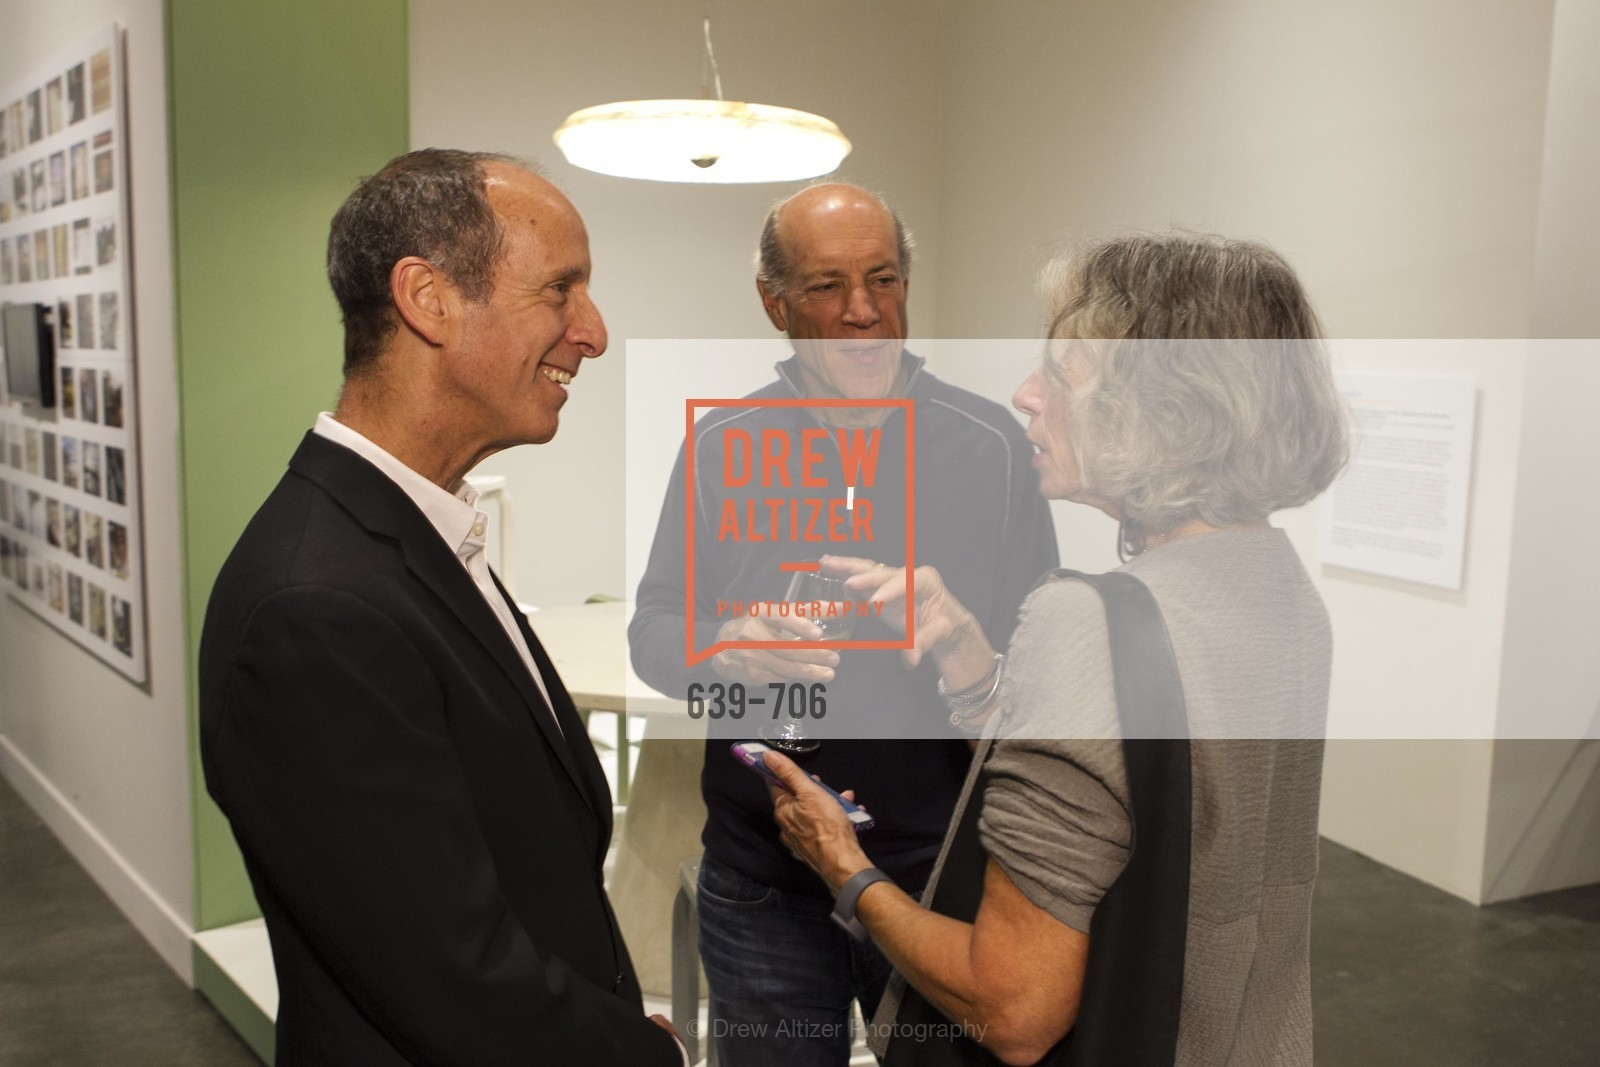 Andy Astor, Exhibit Opening at the MUSEUM OF CRAFT AND DESIGN - Hands Off: New Dutch Design at the Confluence of Technology & Craft, US, May 8th, 2015,Drew Altizer, Drew Altizer Photography, full-service agency, private events, San Francisco photographer, photographer california